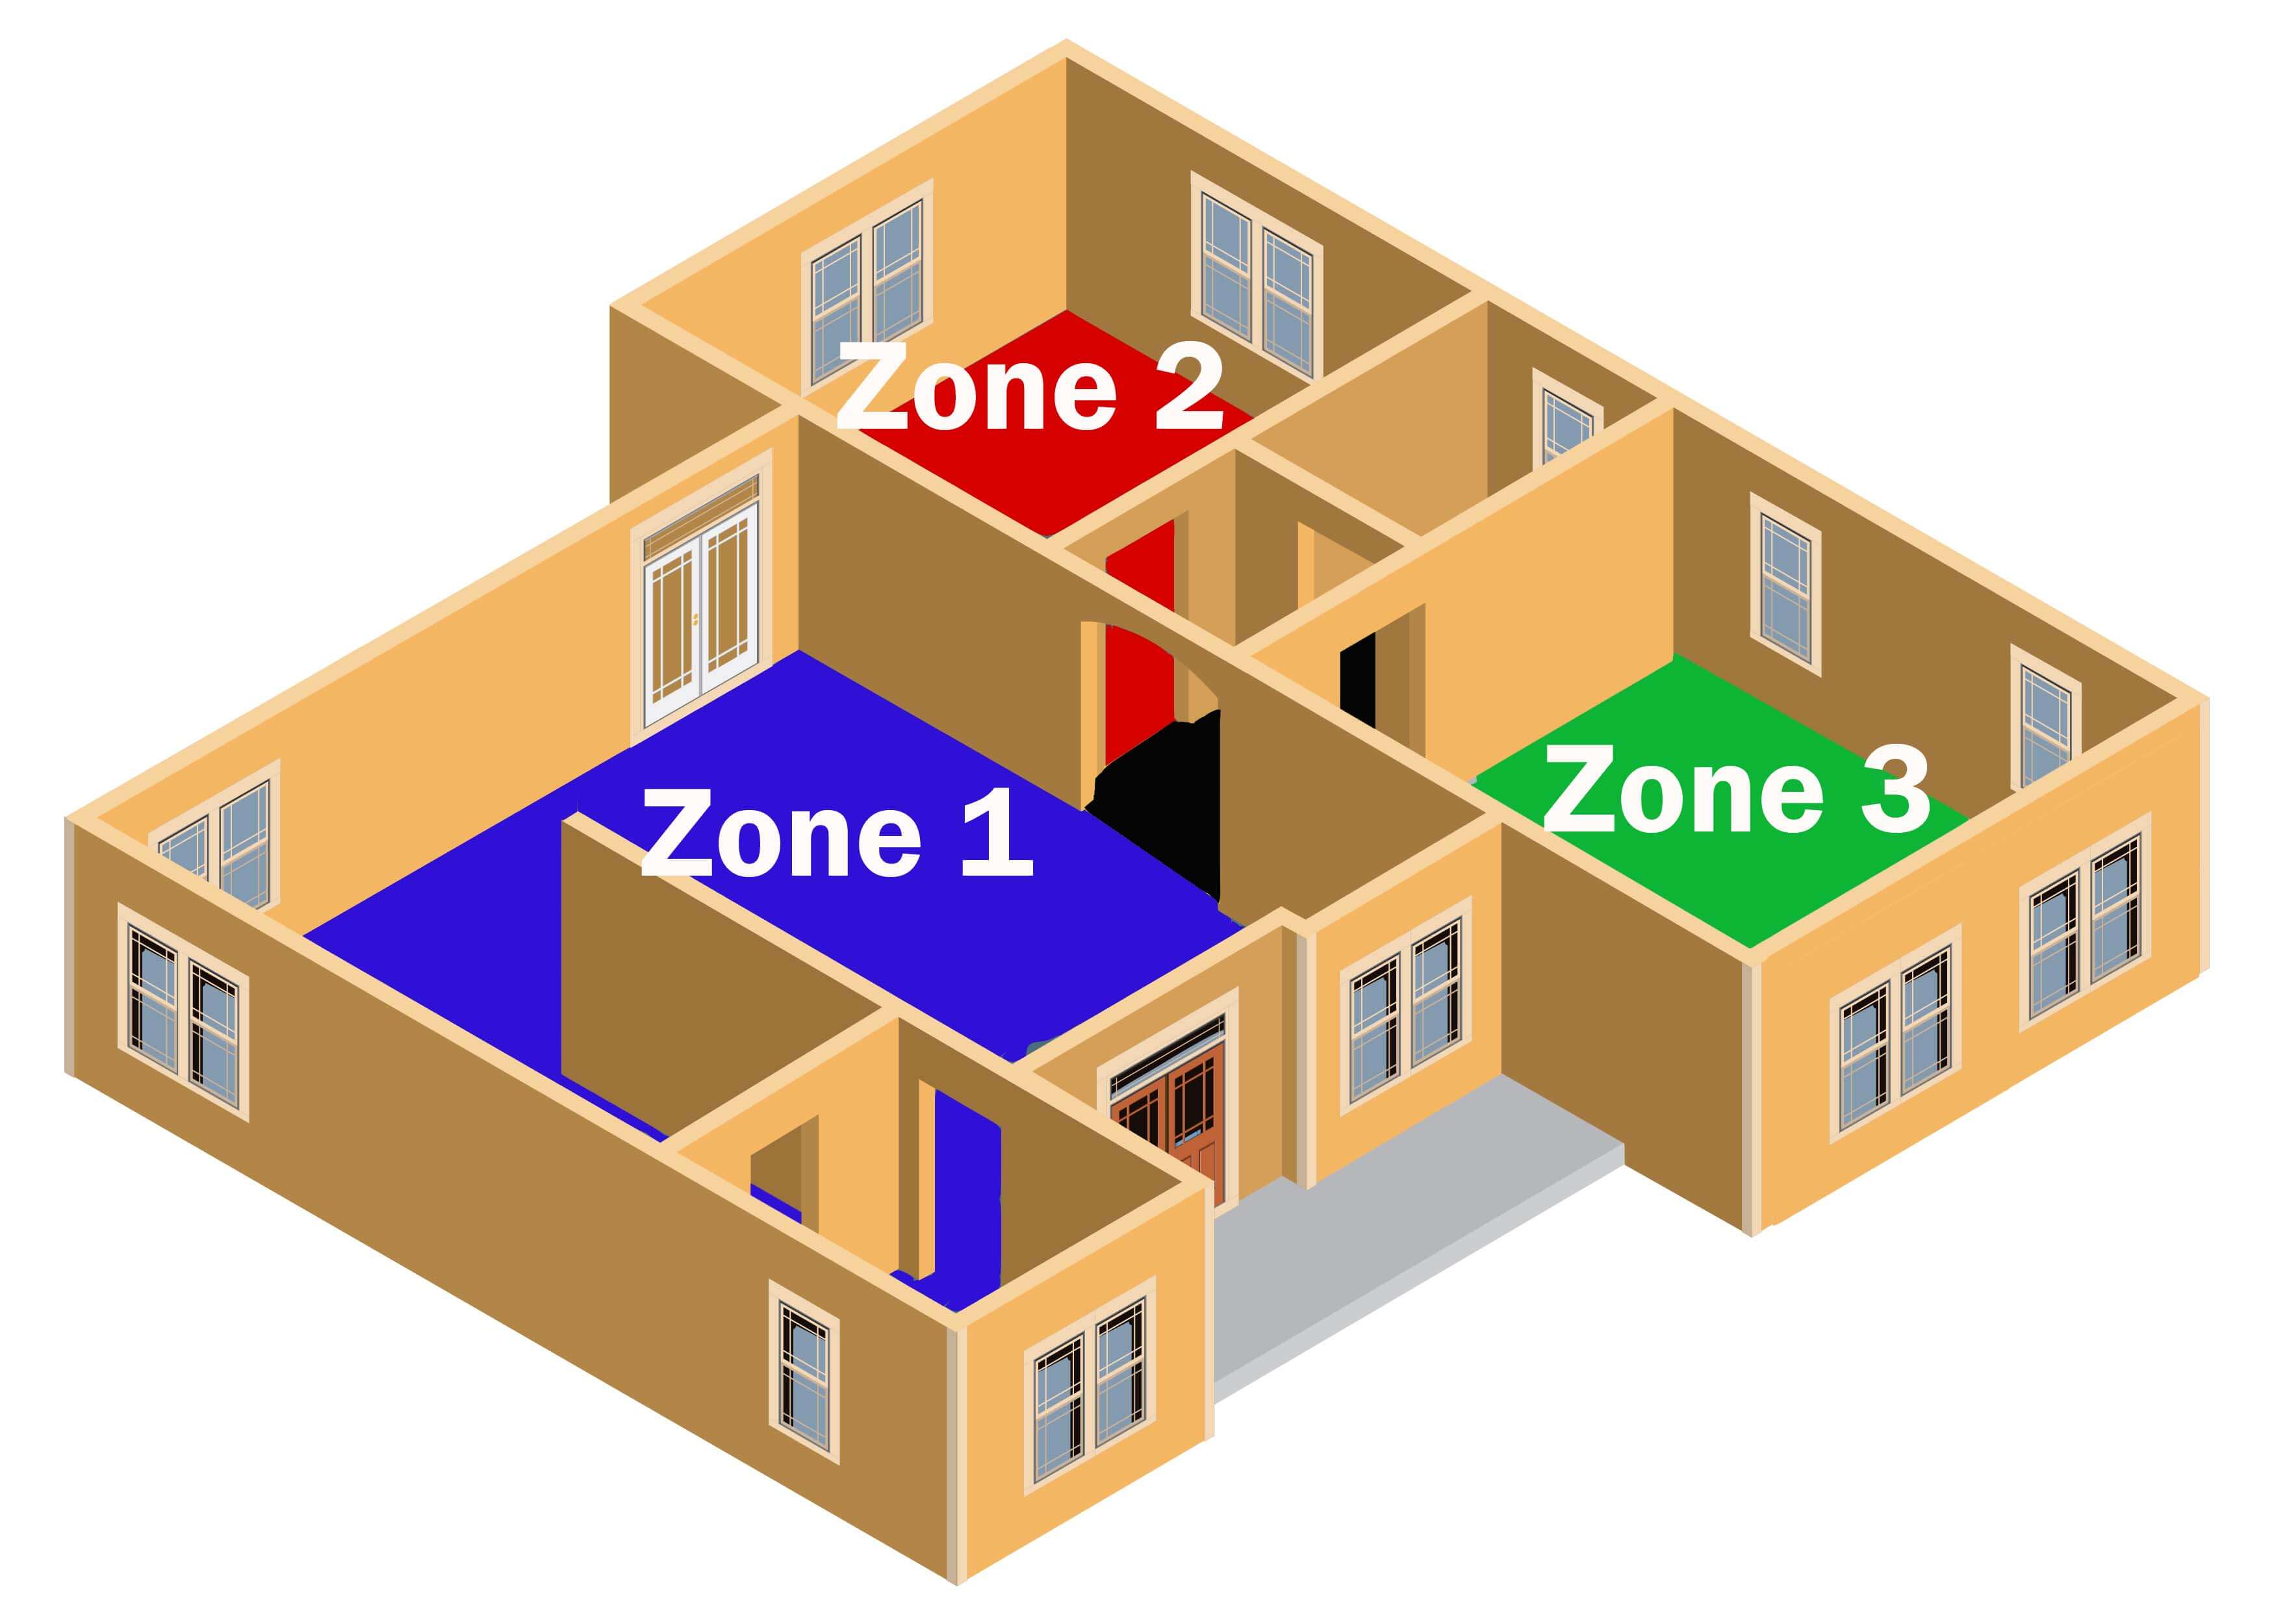 House with zone numbers